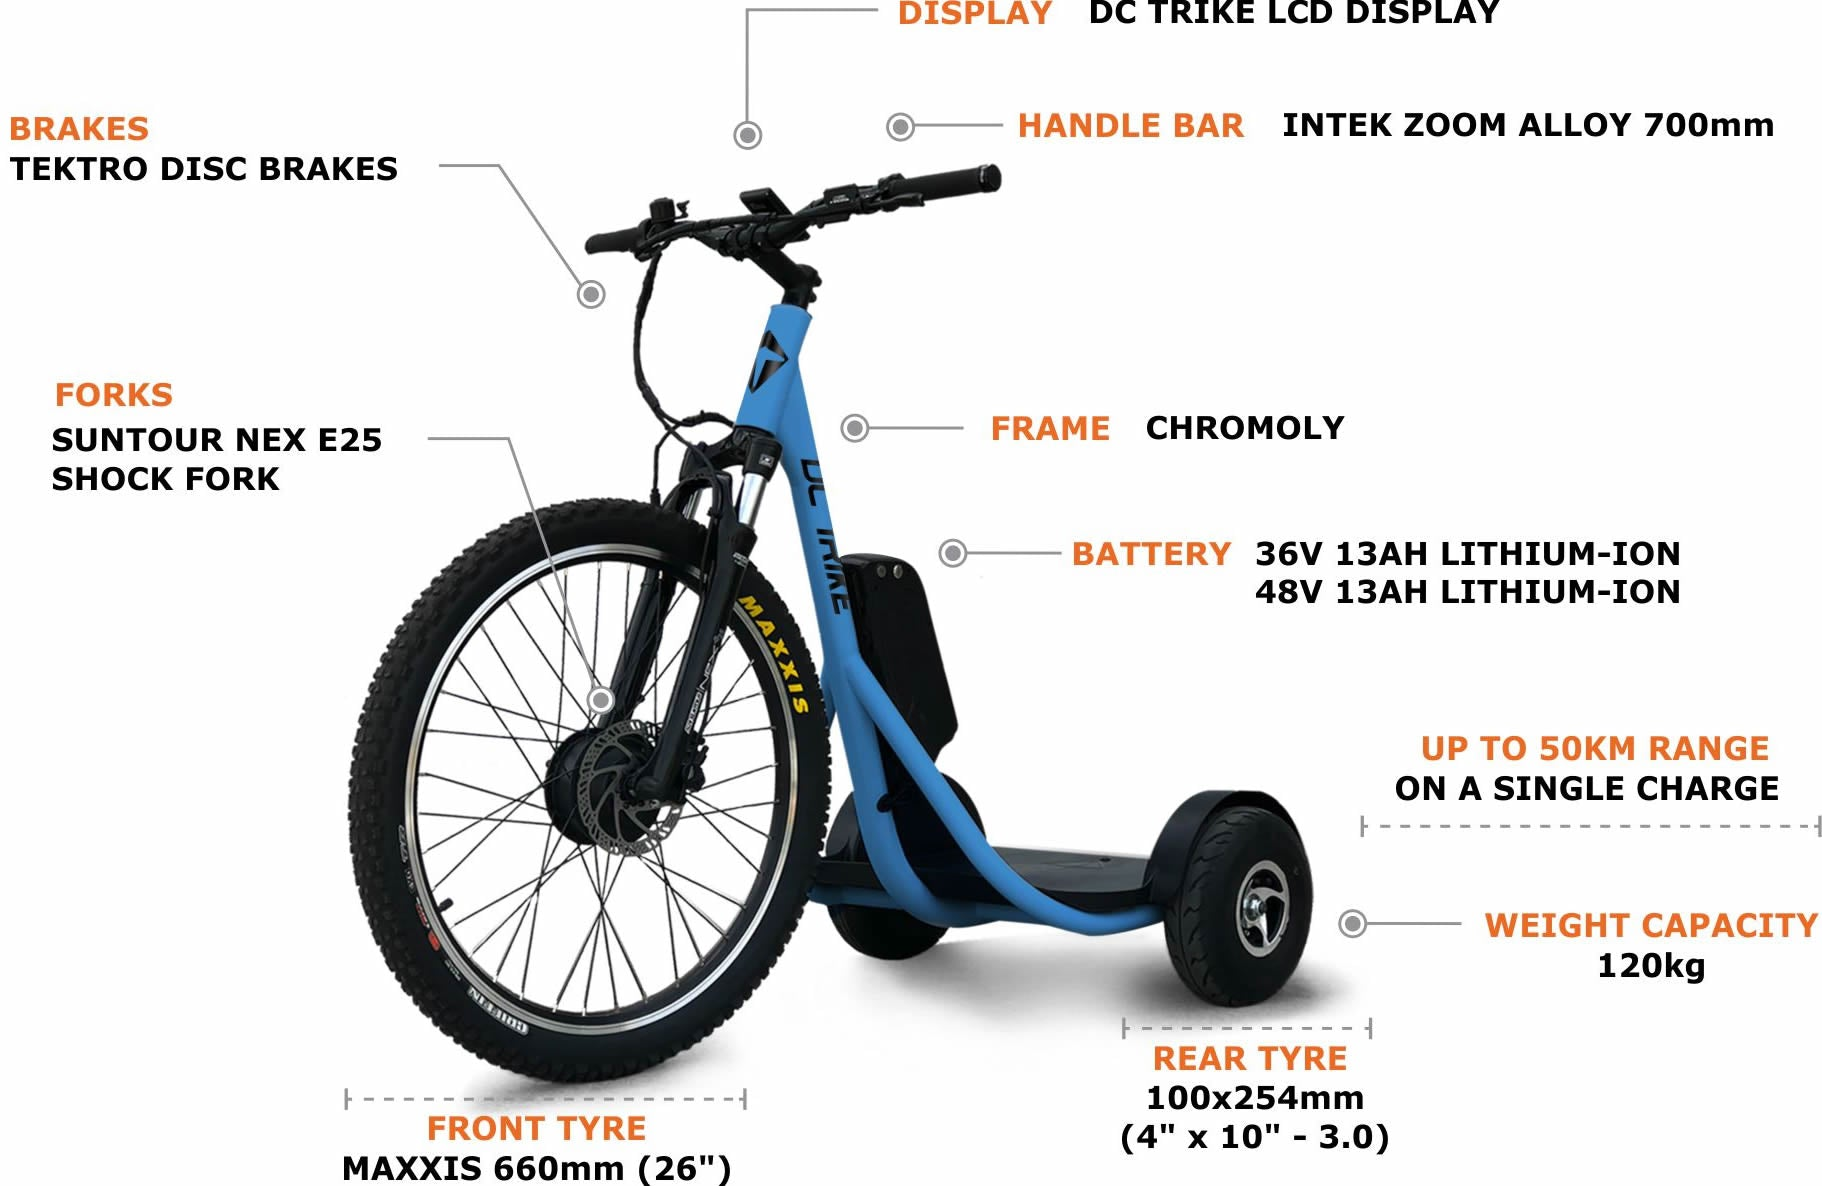 Components of a DC Trike